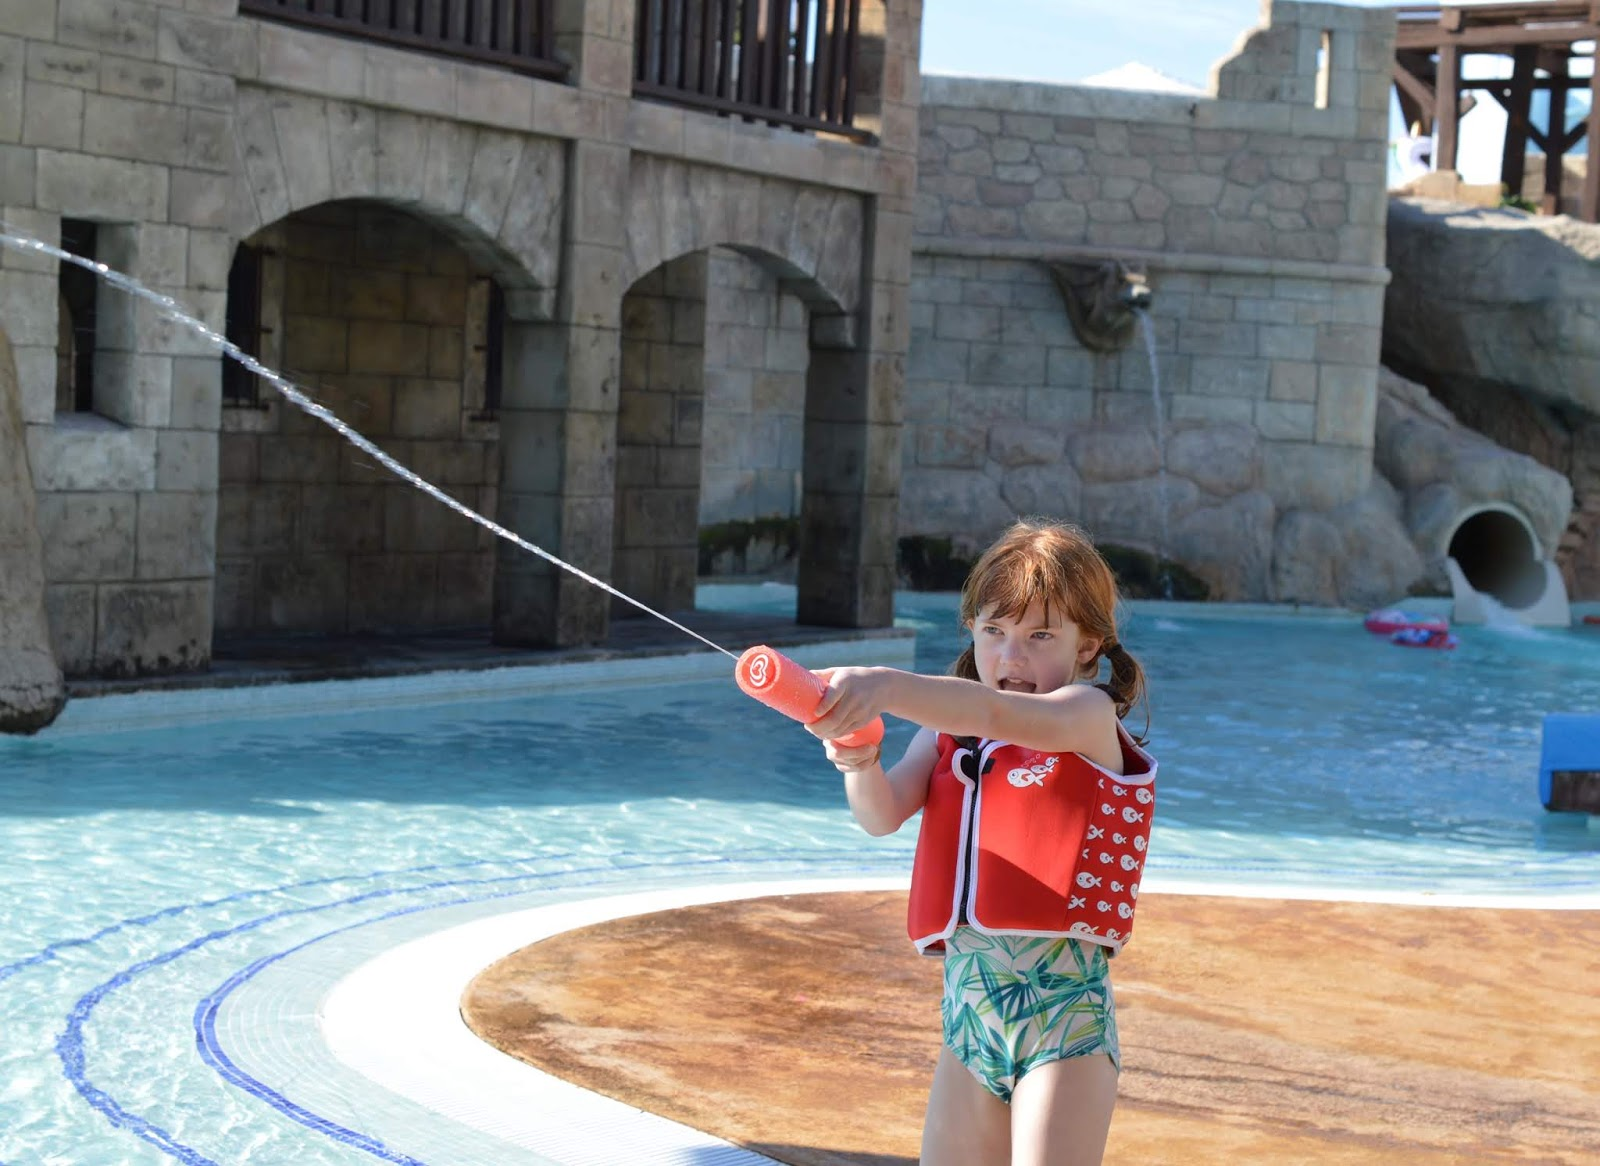 Pirates Village Santa Ponsa | Jet 2 Holidays Review  - pool waterfight